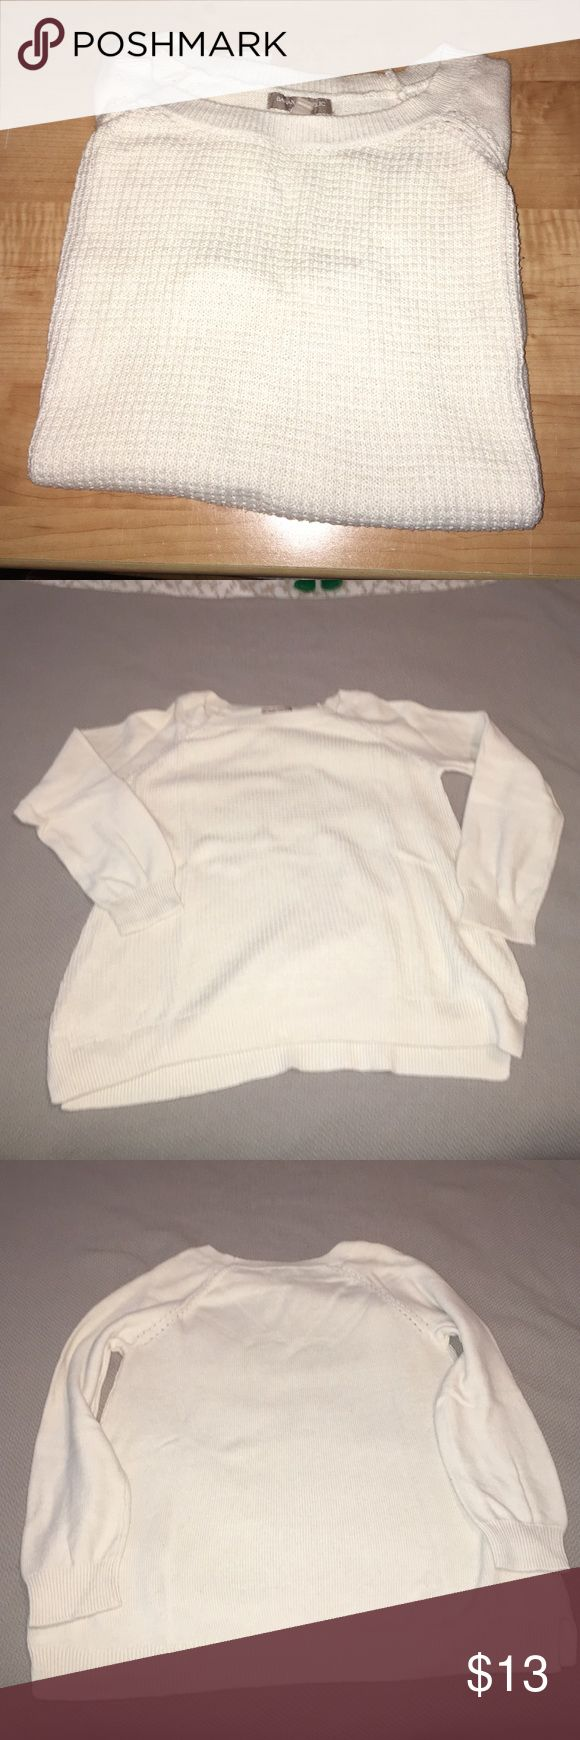 Banana Republic White Sweater Banana Republic White Sweater. Has been worn, but no stains! Super cute with skinny jeans and chunky heeled boots. Banana Republic Sweaters Crew & Scoop Necks